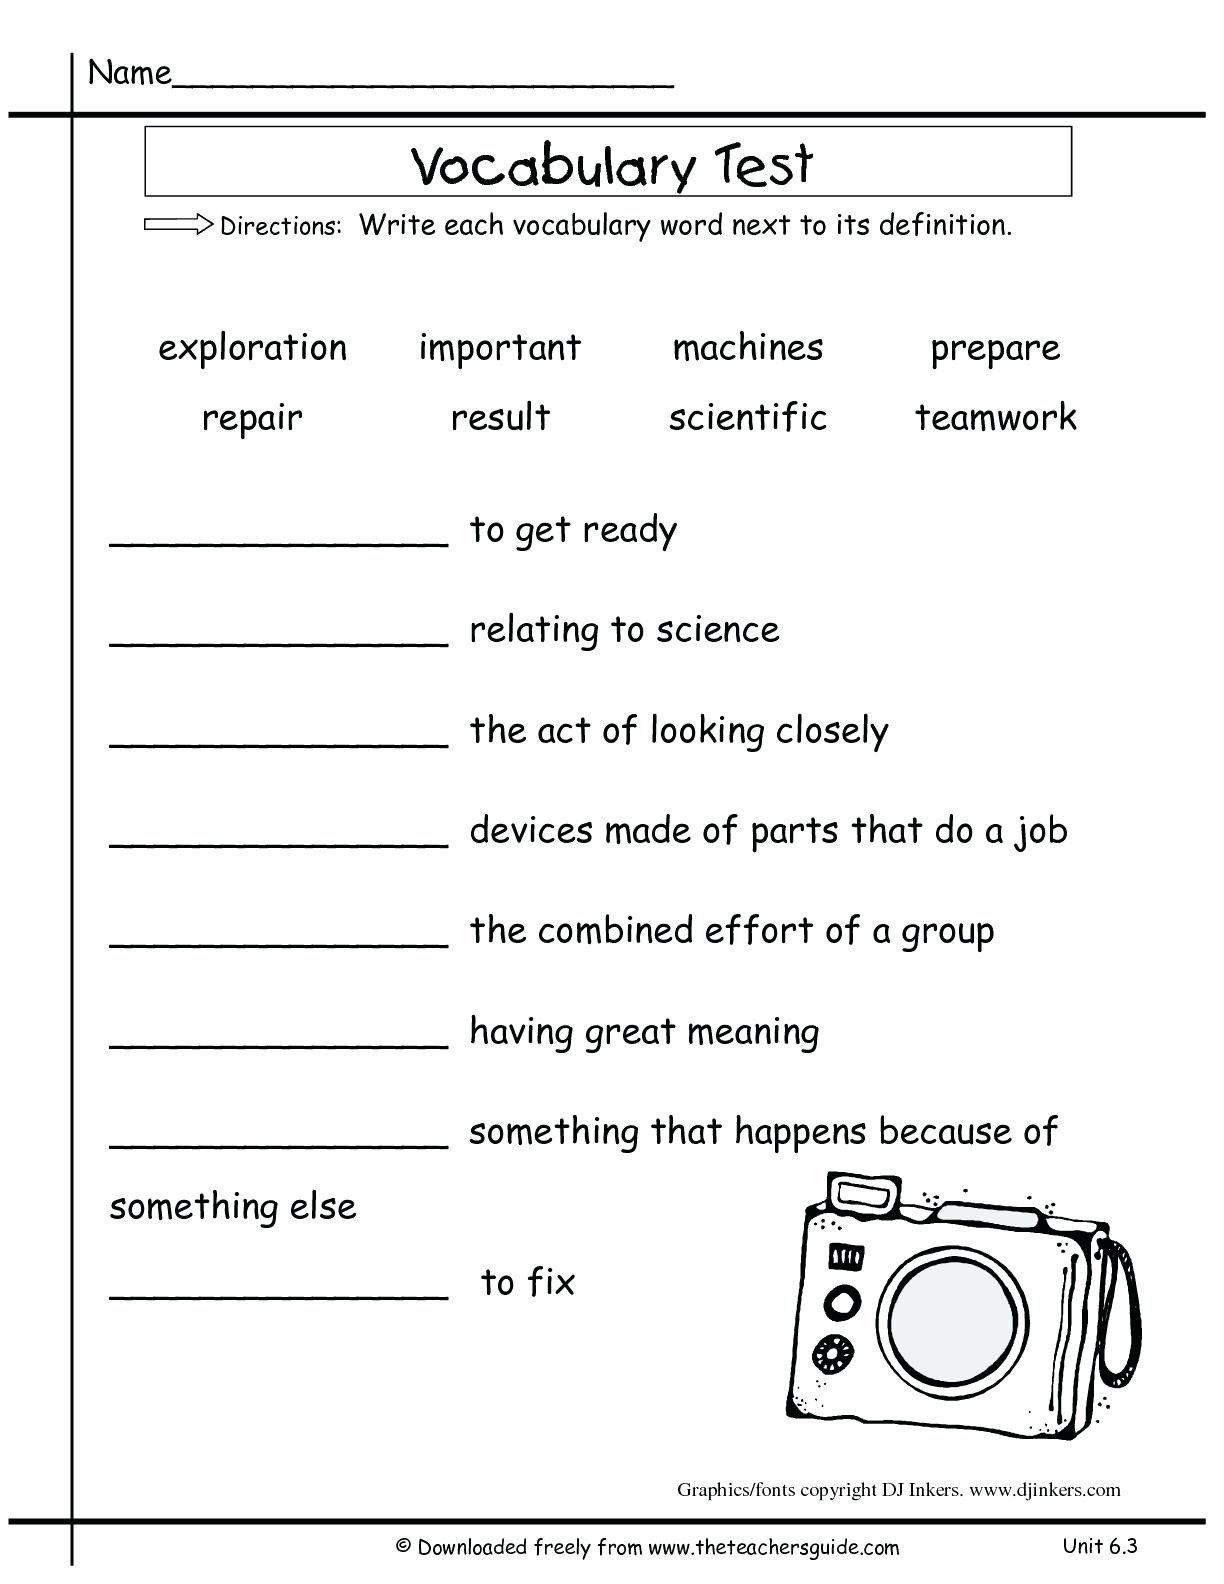 5th Grade Vocabulary Worksheet Multiple Meaning Words Worksheets 5th Grade In 2020 Vocabulary Worksheets Vocabulary Words 5th Grade Spelling Words